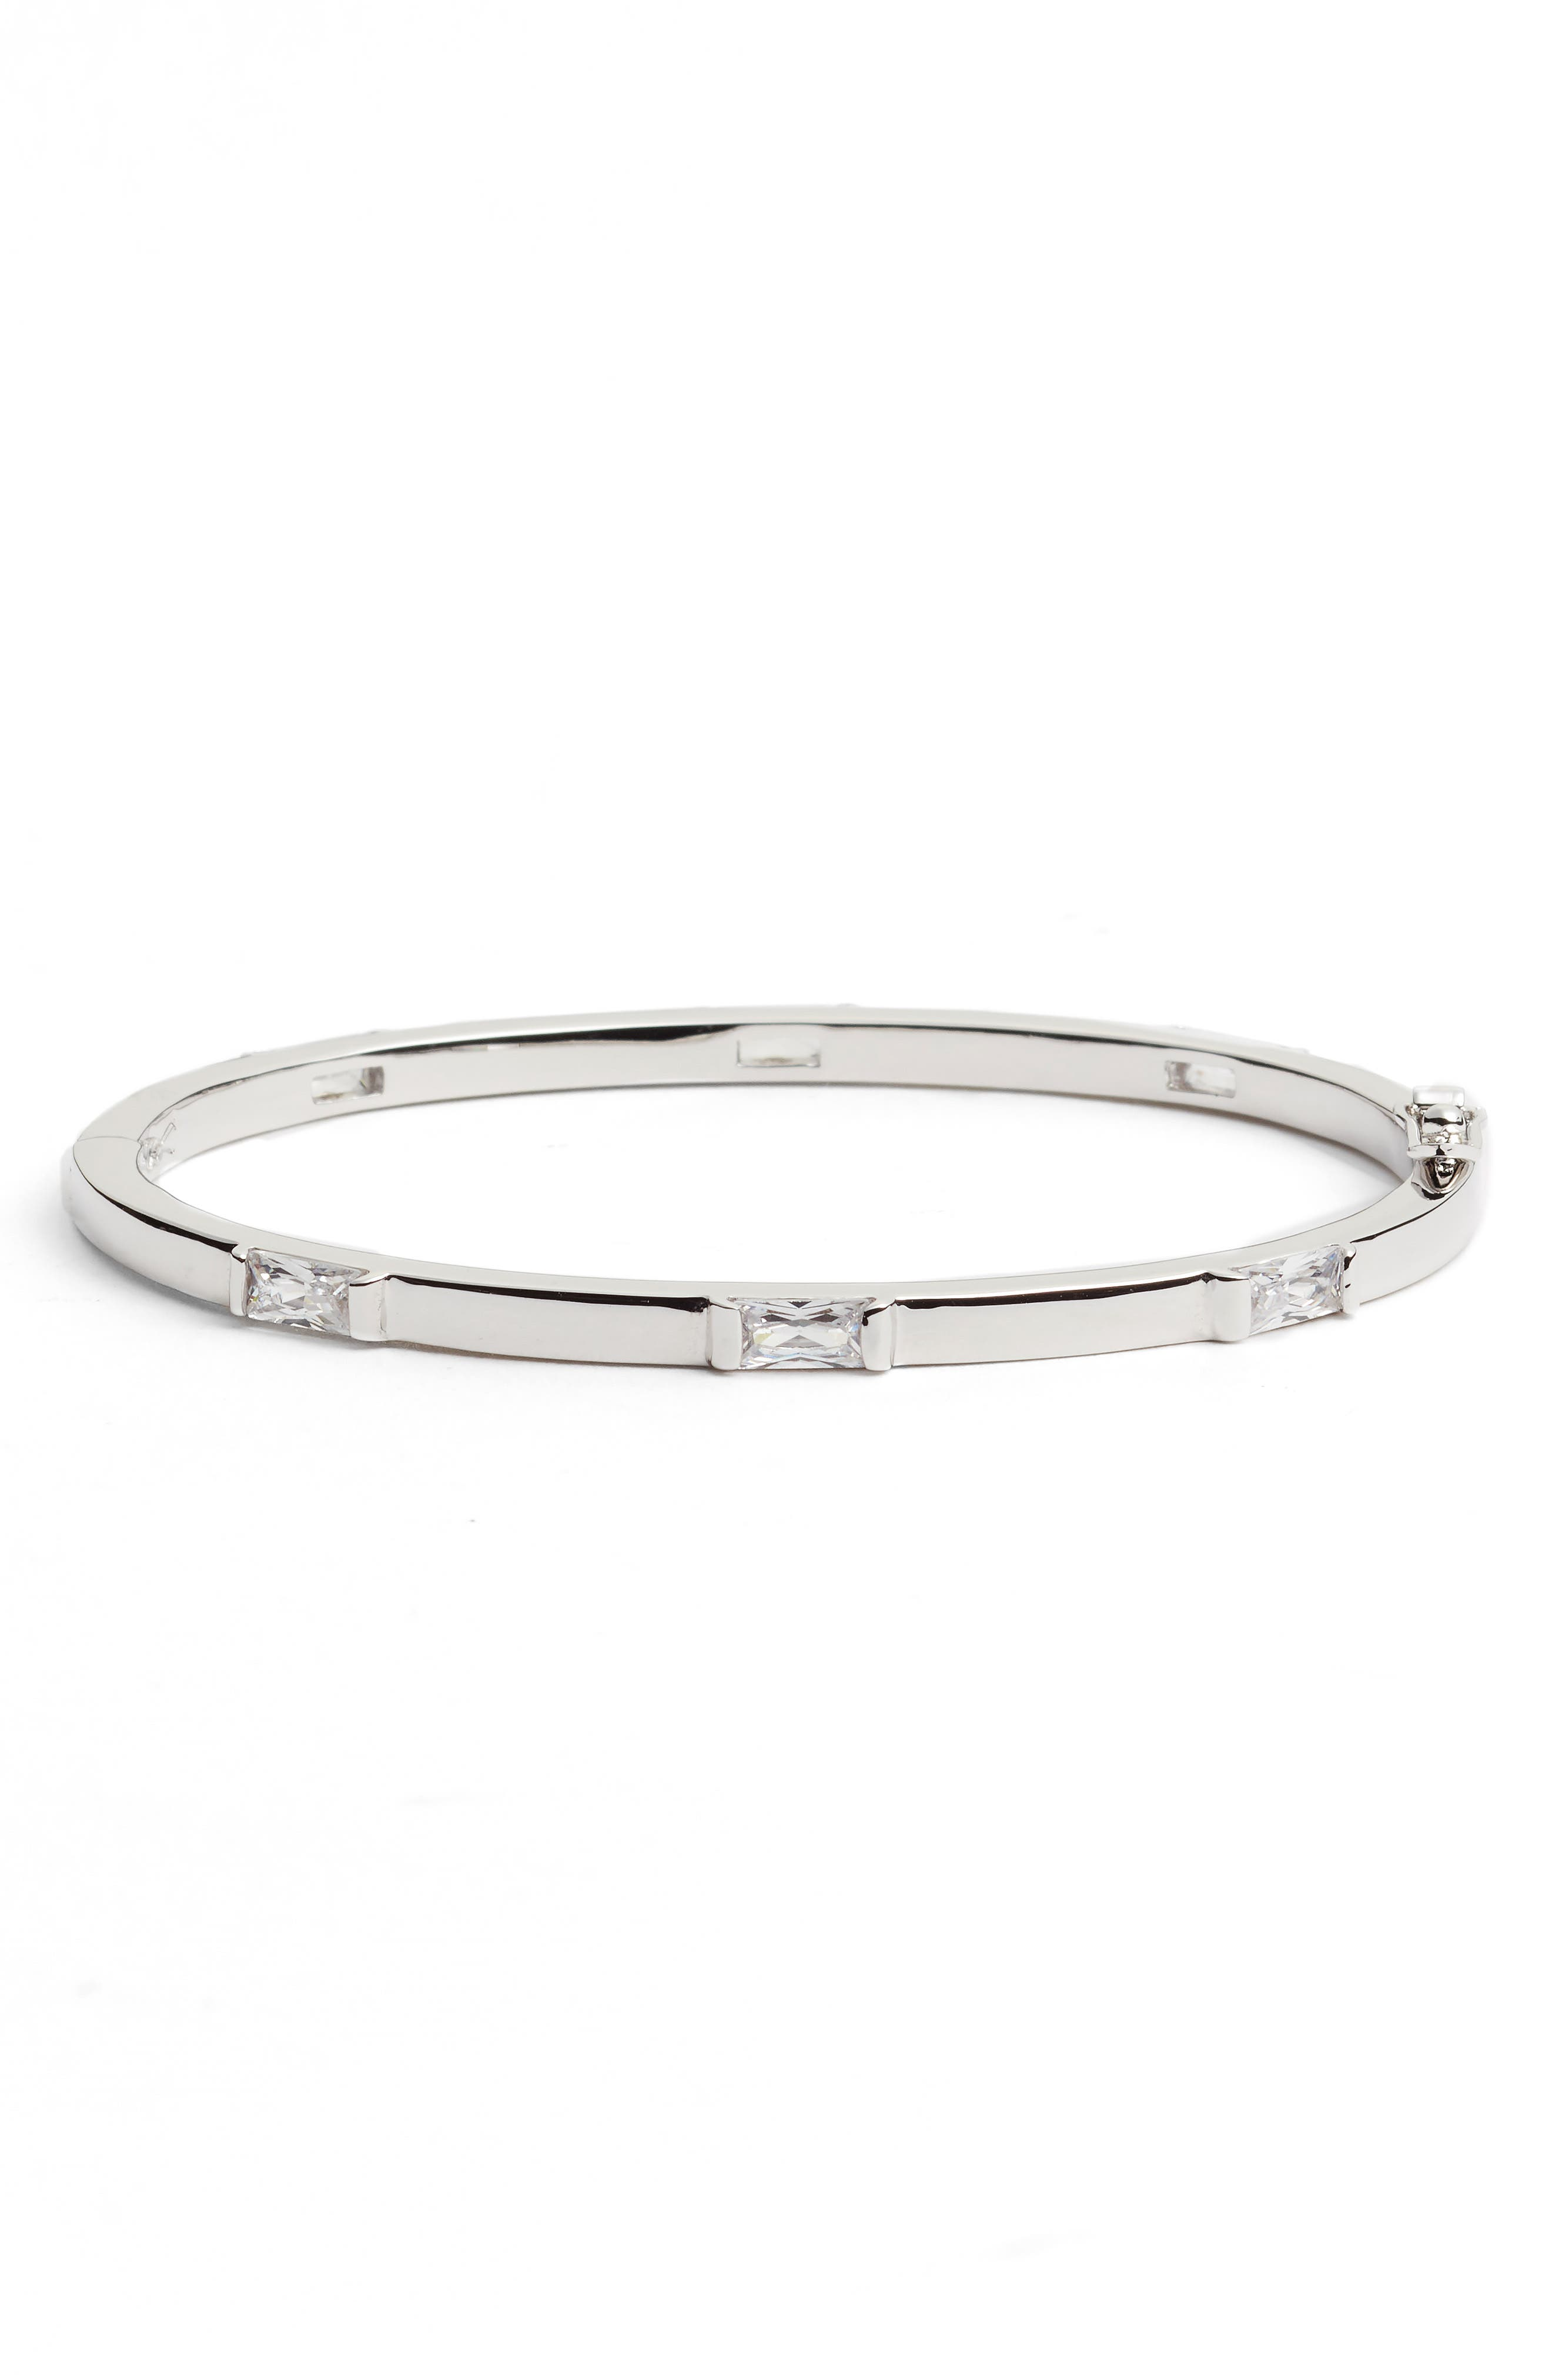 Step Cut Crystal Horizontal Station Bracelet,                         Main,                         color, 040